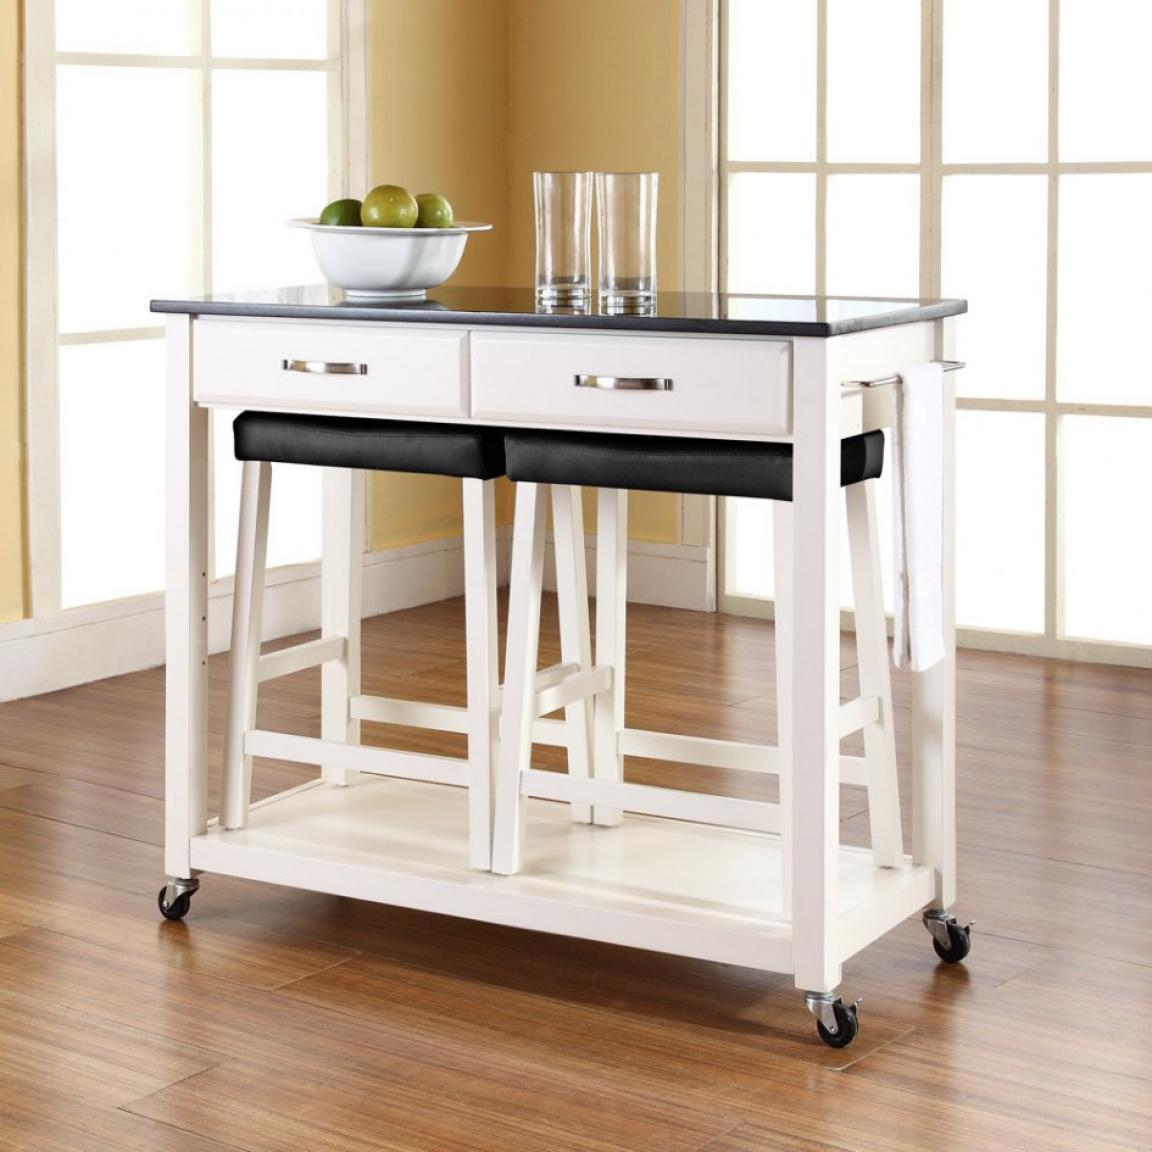 Stools Kitchen Islands White Kitchen Island Cart With Stools